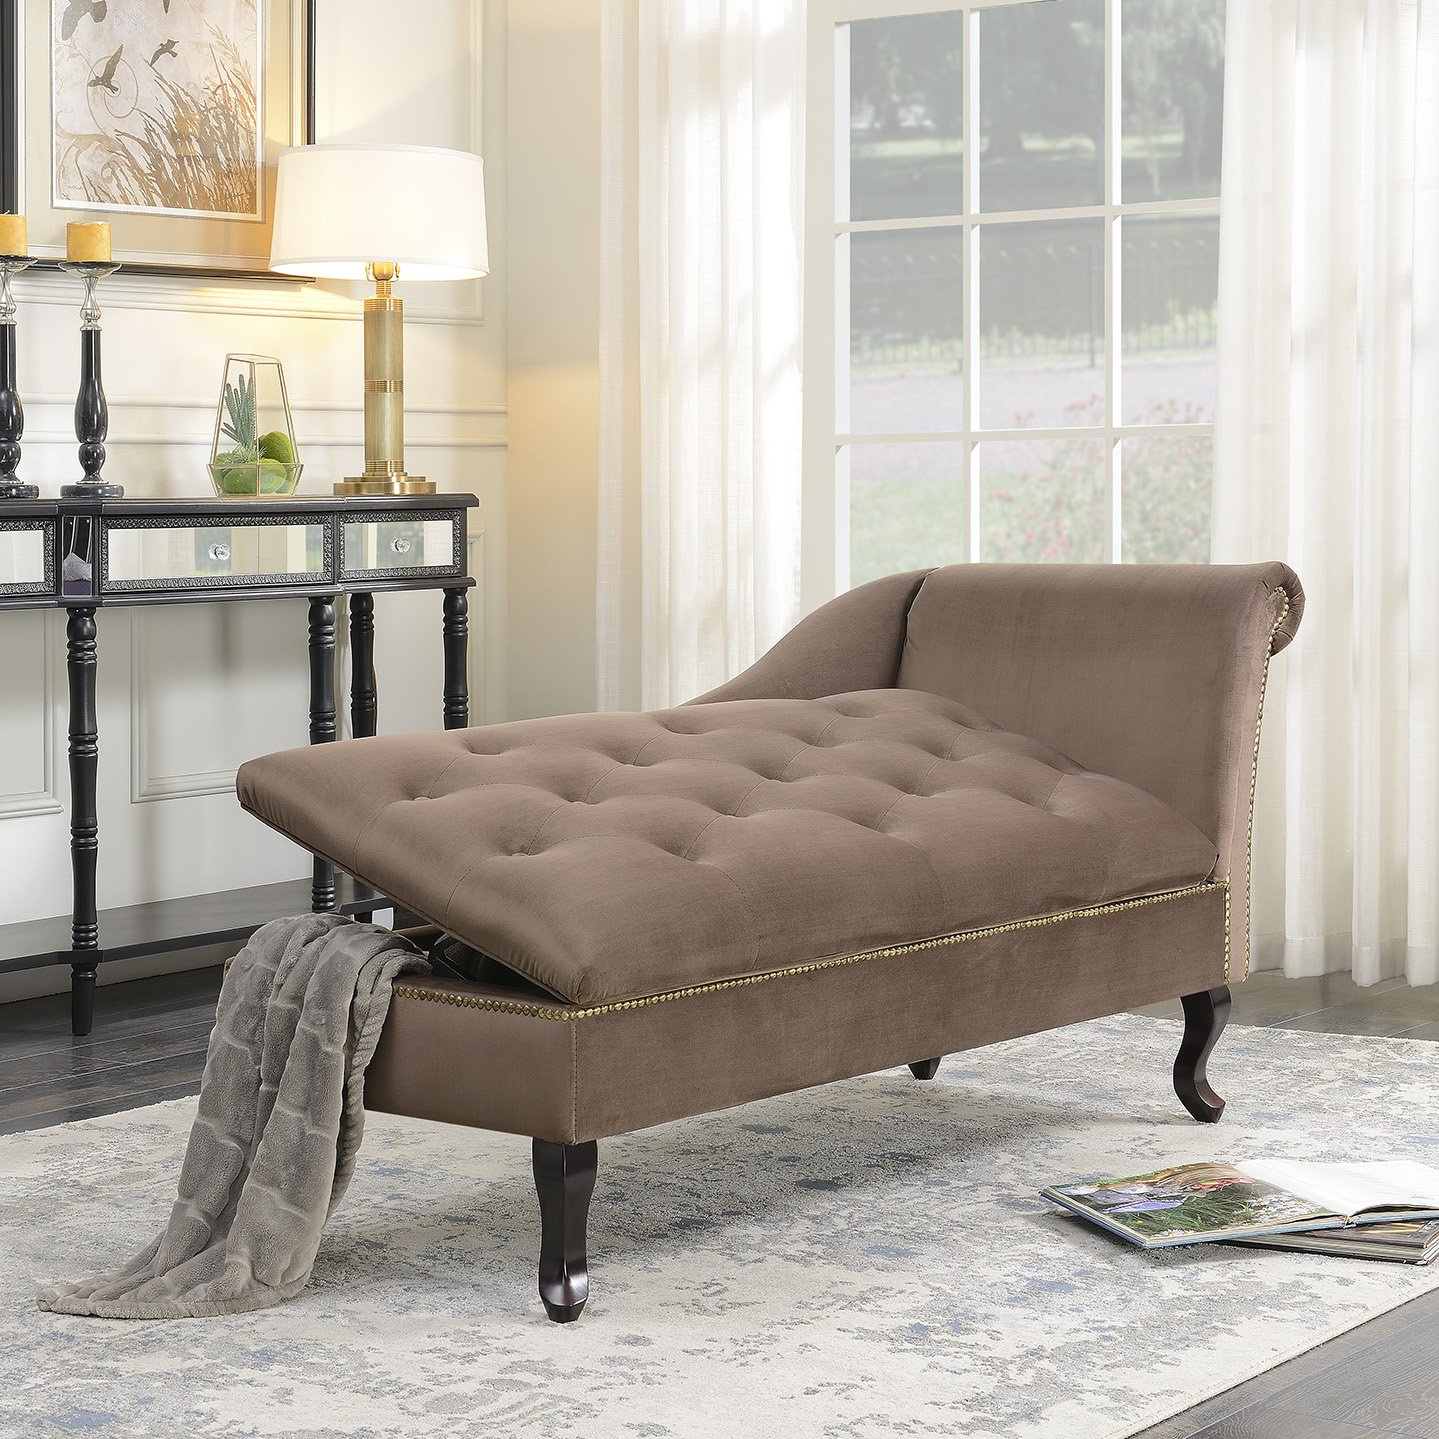 Belleze Velveteen Tufted Open Fold Spa Chaise Lounge Chair